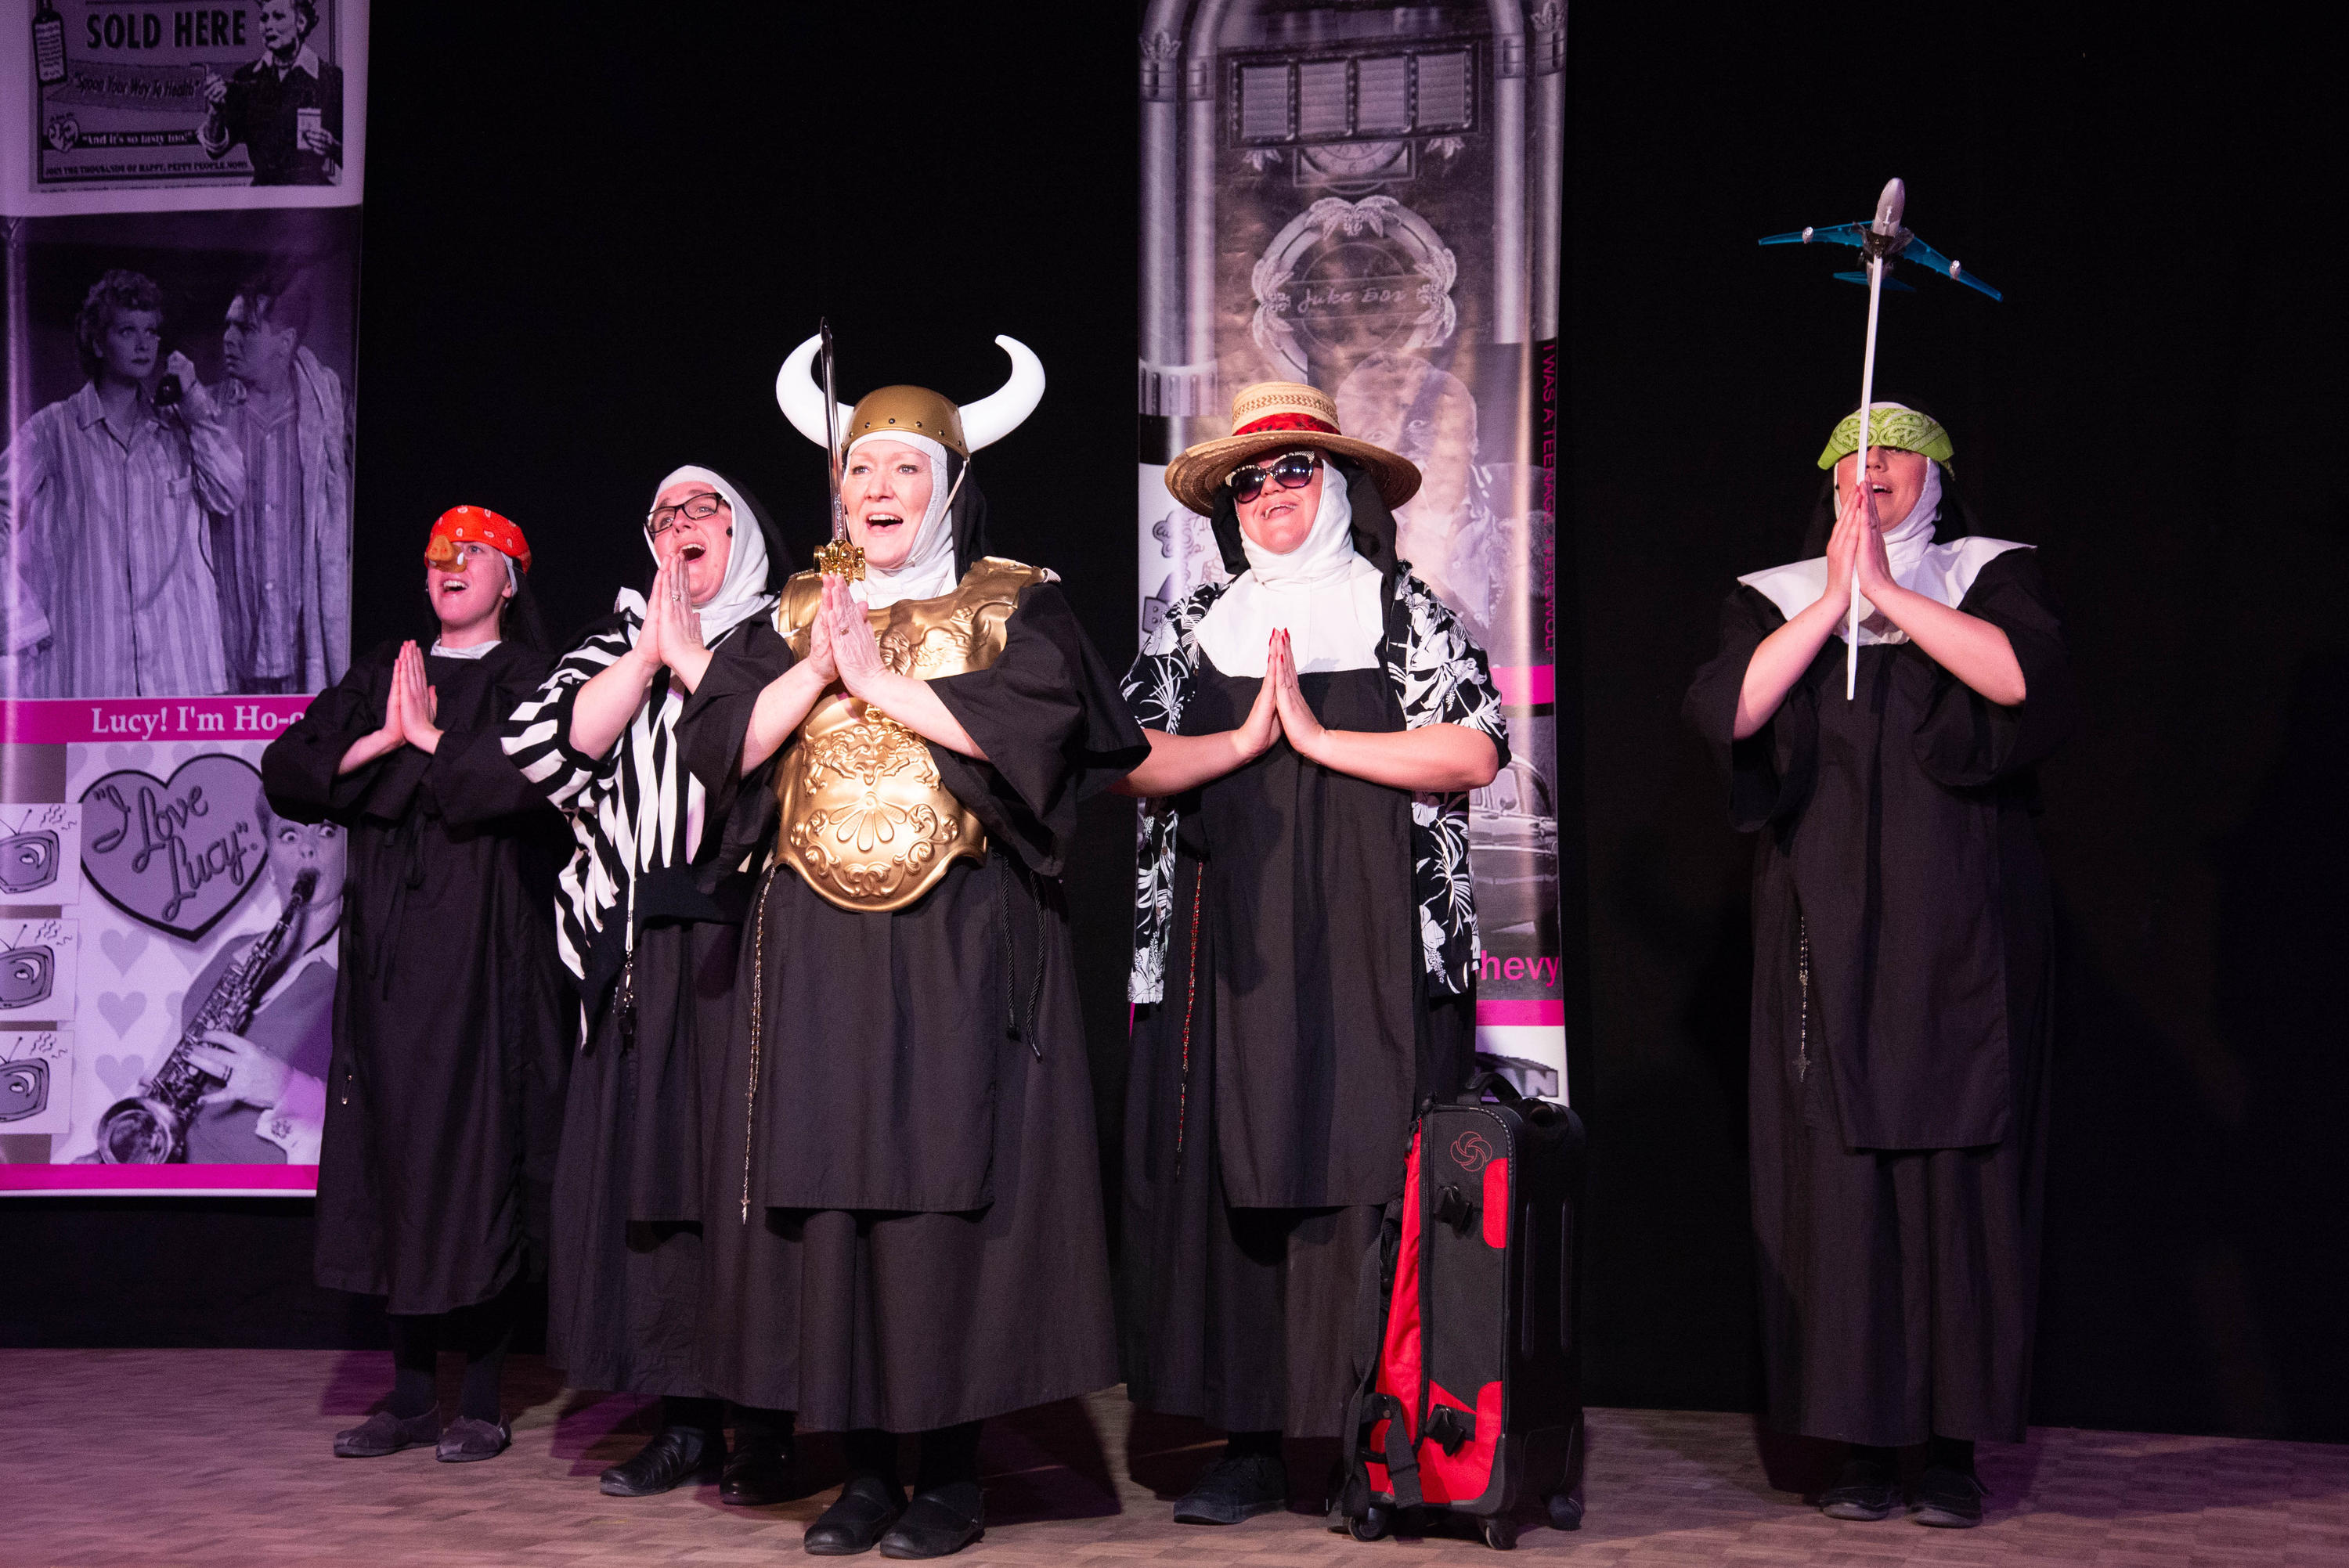 A group of actresses dressed as nuns sing on stage with props like viking horns, a model airplane, and traveling gear.